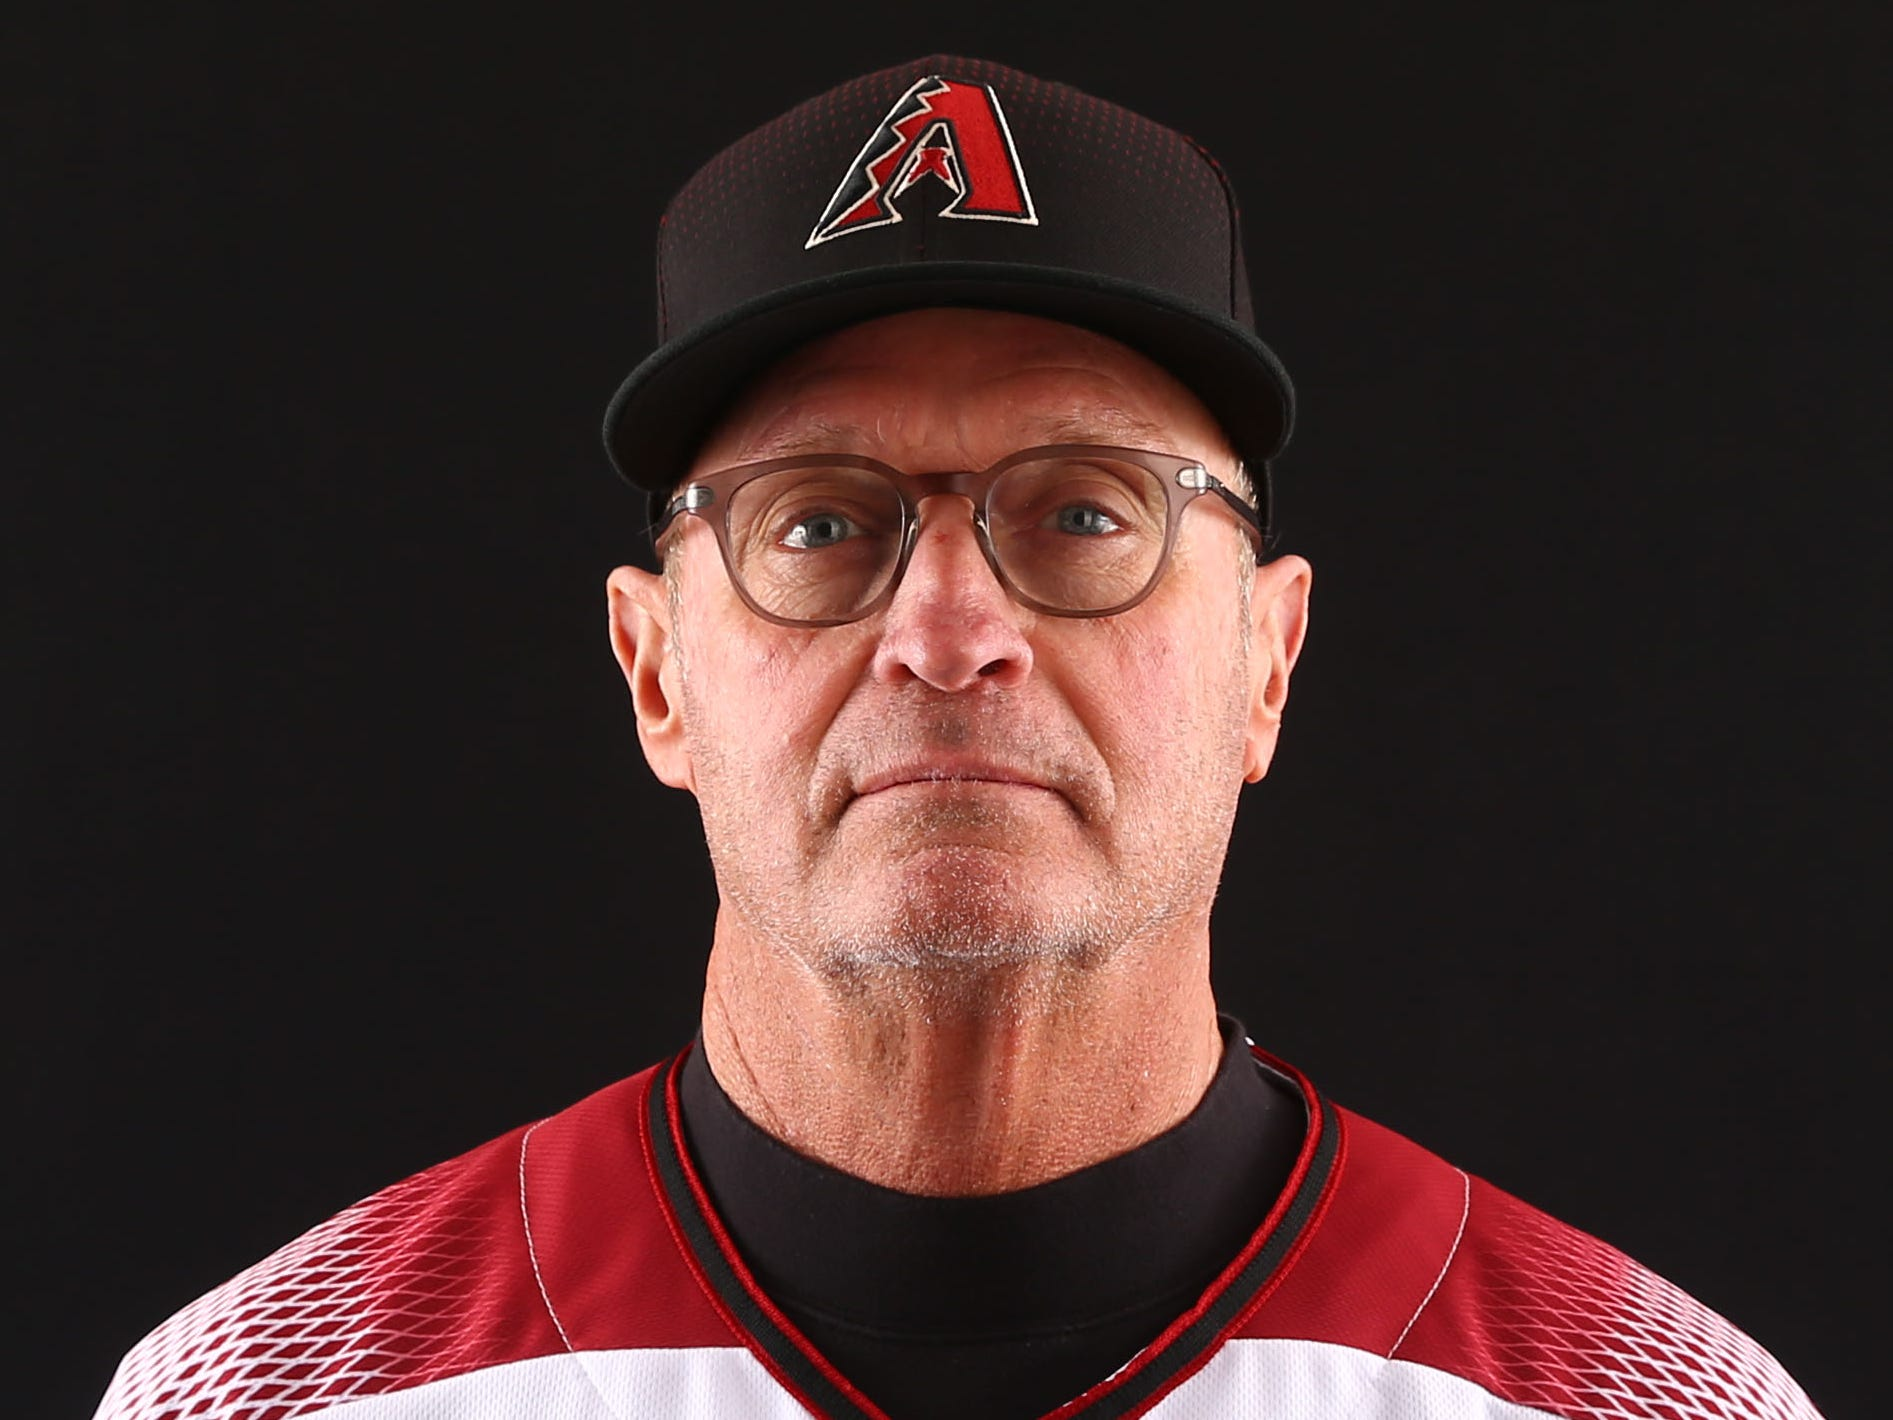 Jerry Narron of the Arizona Diamondbacks poses for a photo during the annual Spring Training Photo Day on Feb. 20 at Salt River Fields in Scottsdale, Ariz.